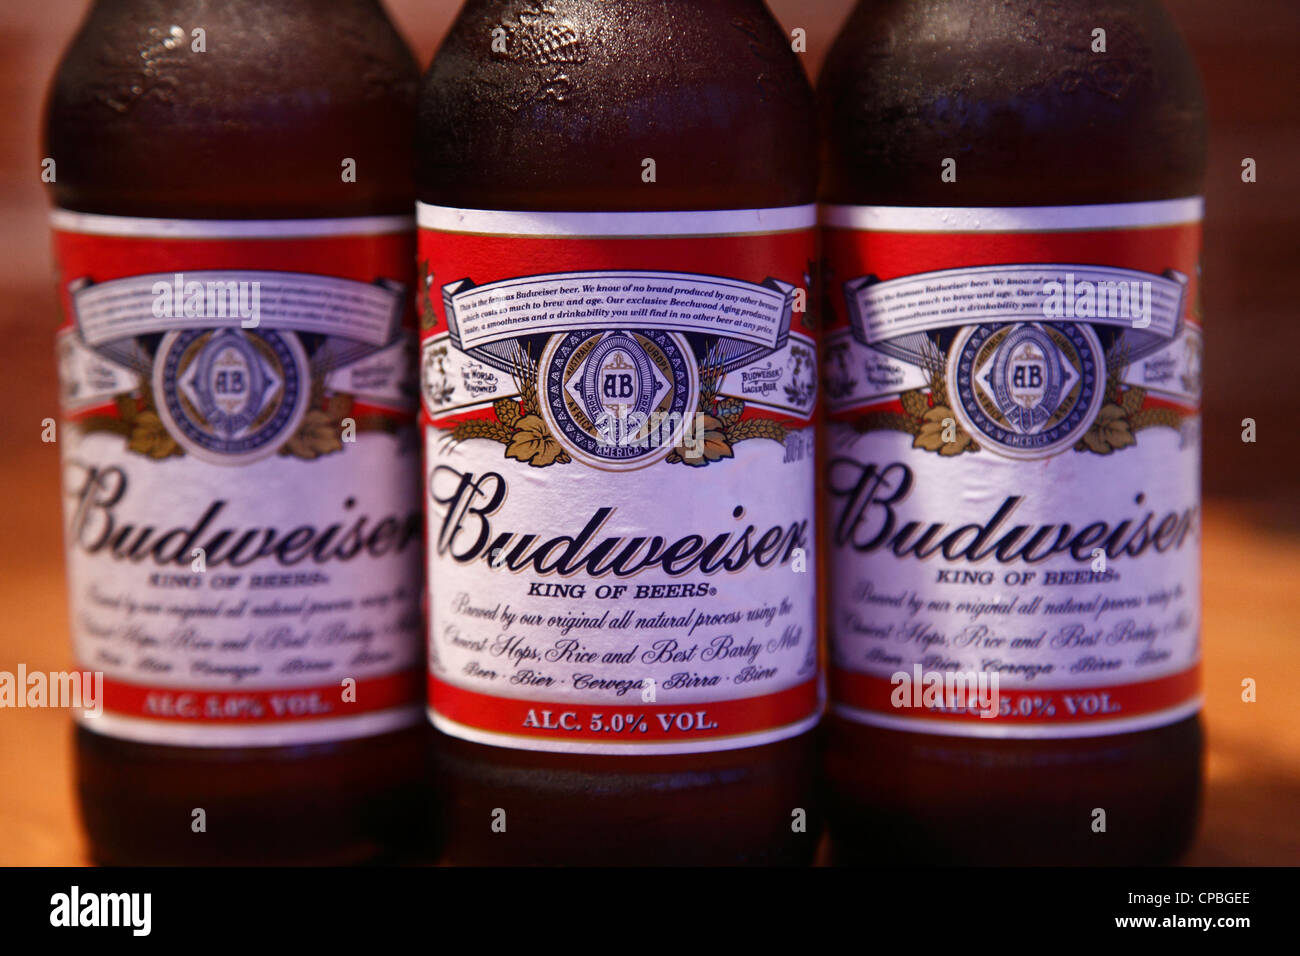 Dating bottiglie Budweiser